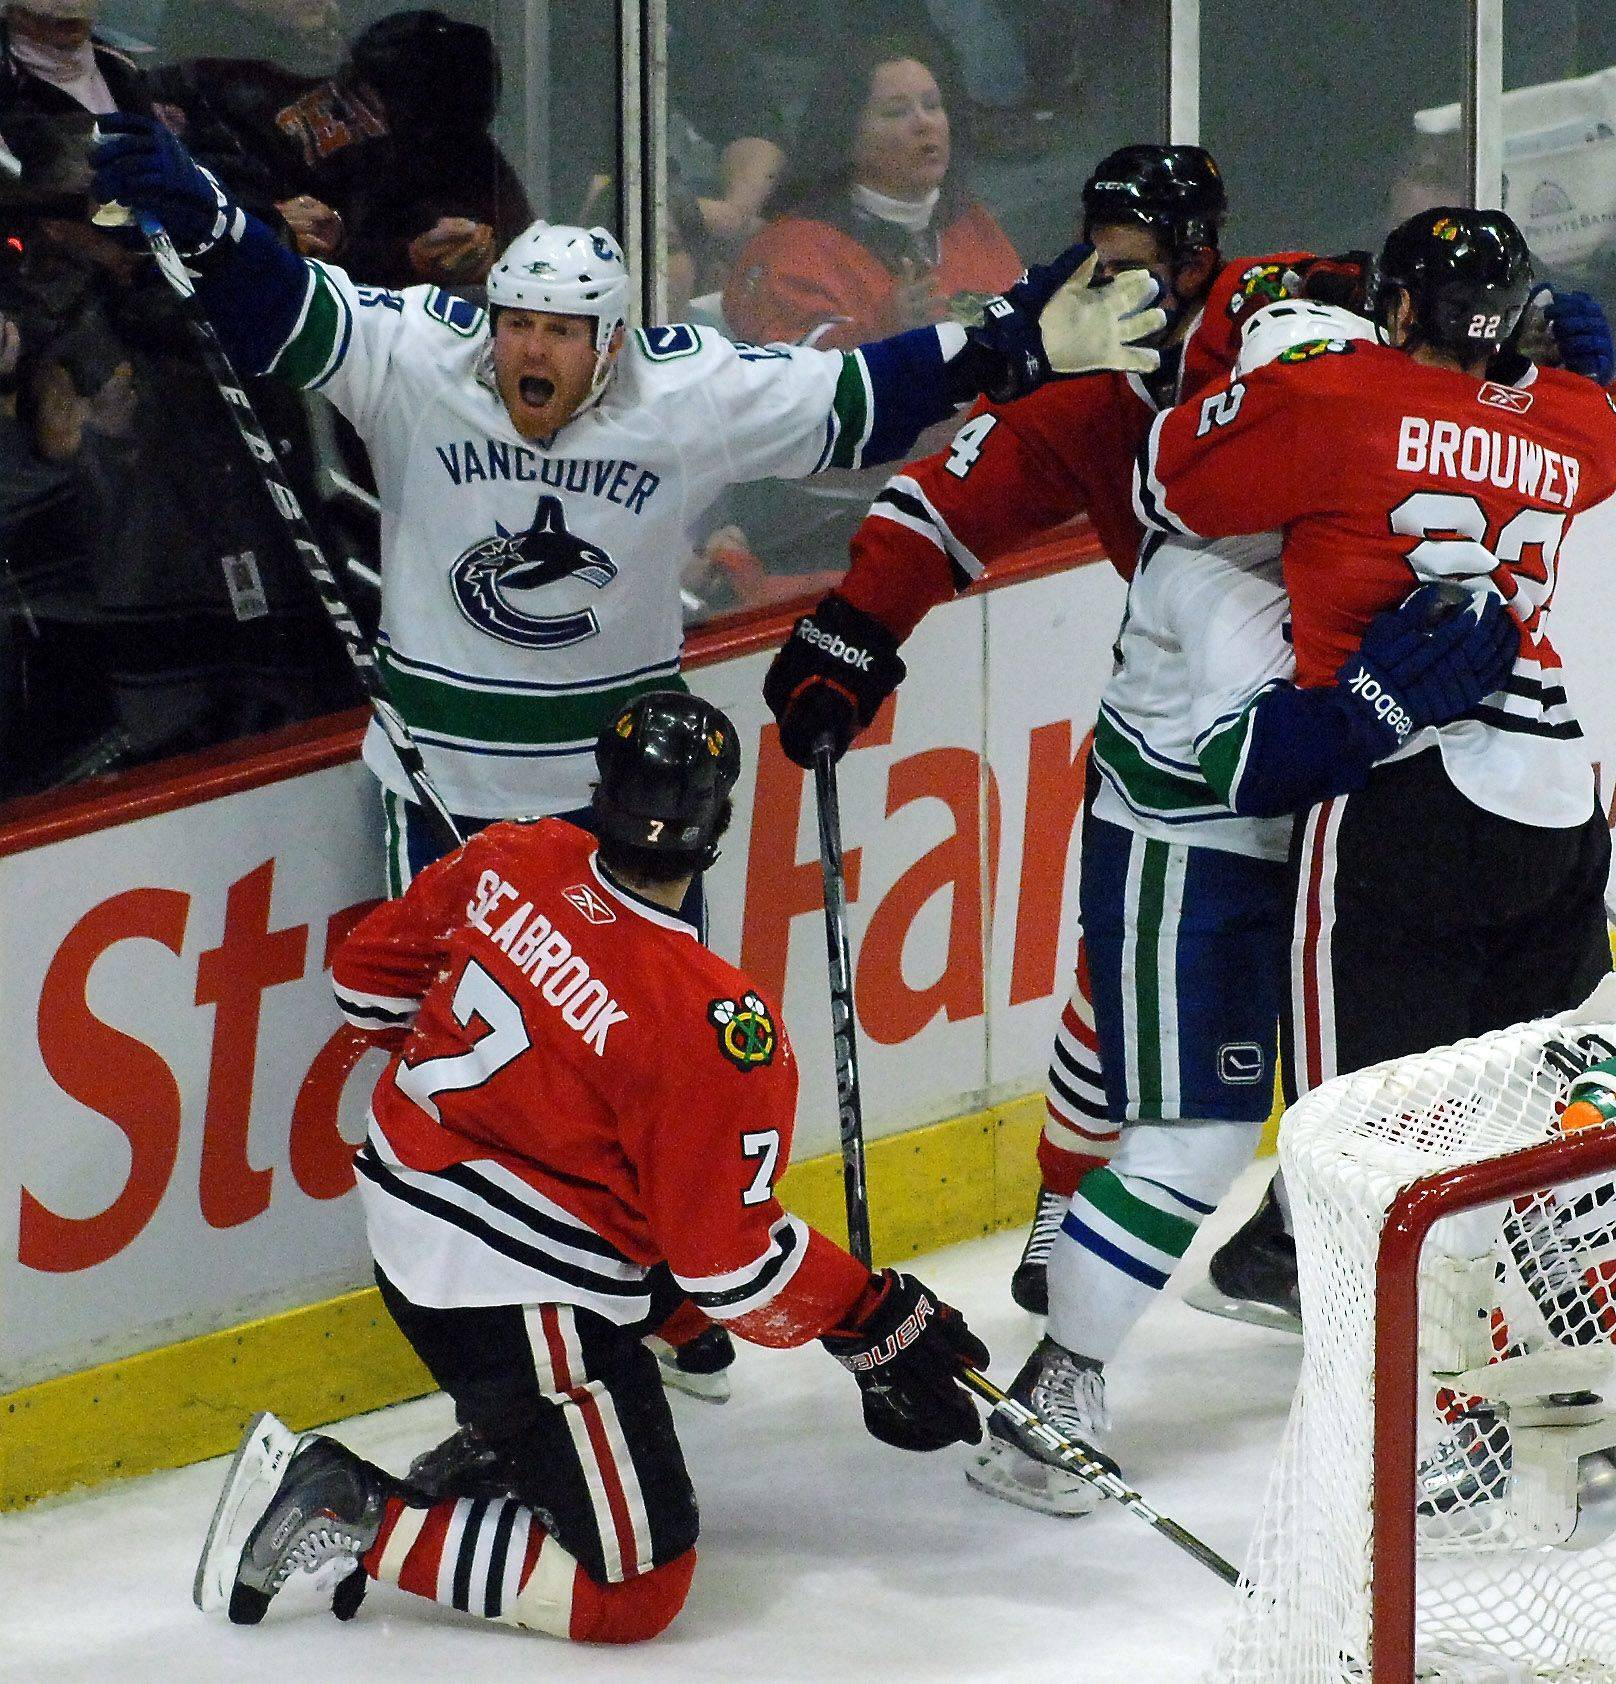 Besides a two-minute penalty during Game 3, Vancouver Canucks left wing Raffi Torres was not punished further by the NHL for his hit on Brent Seabrook.